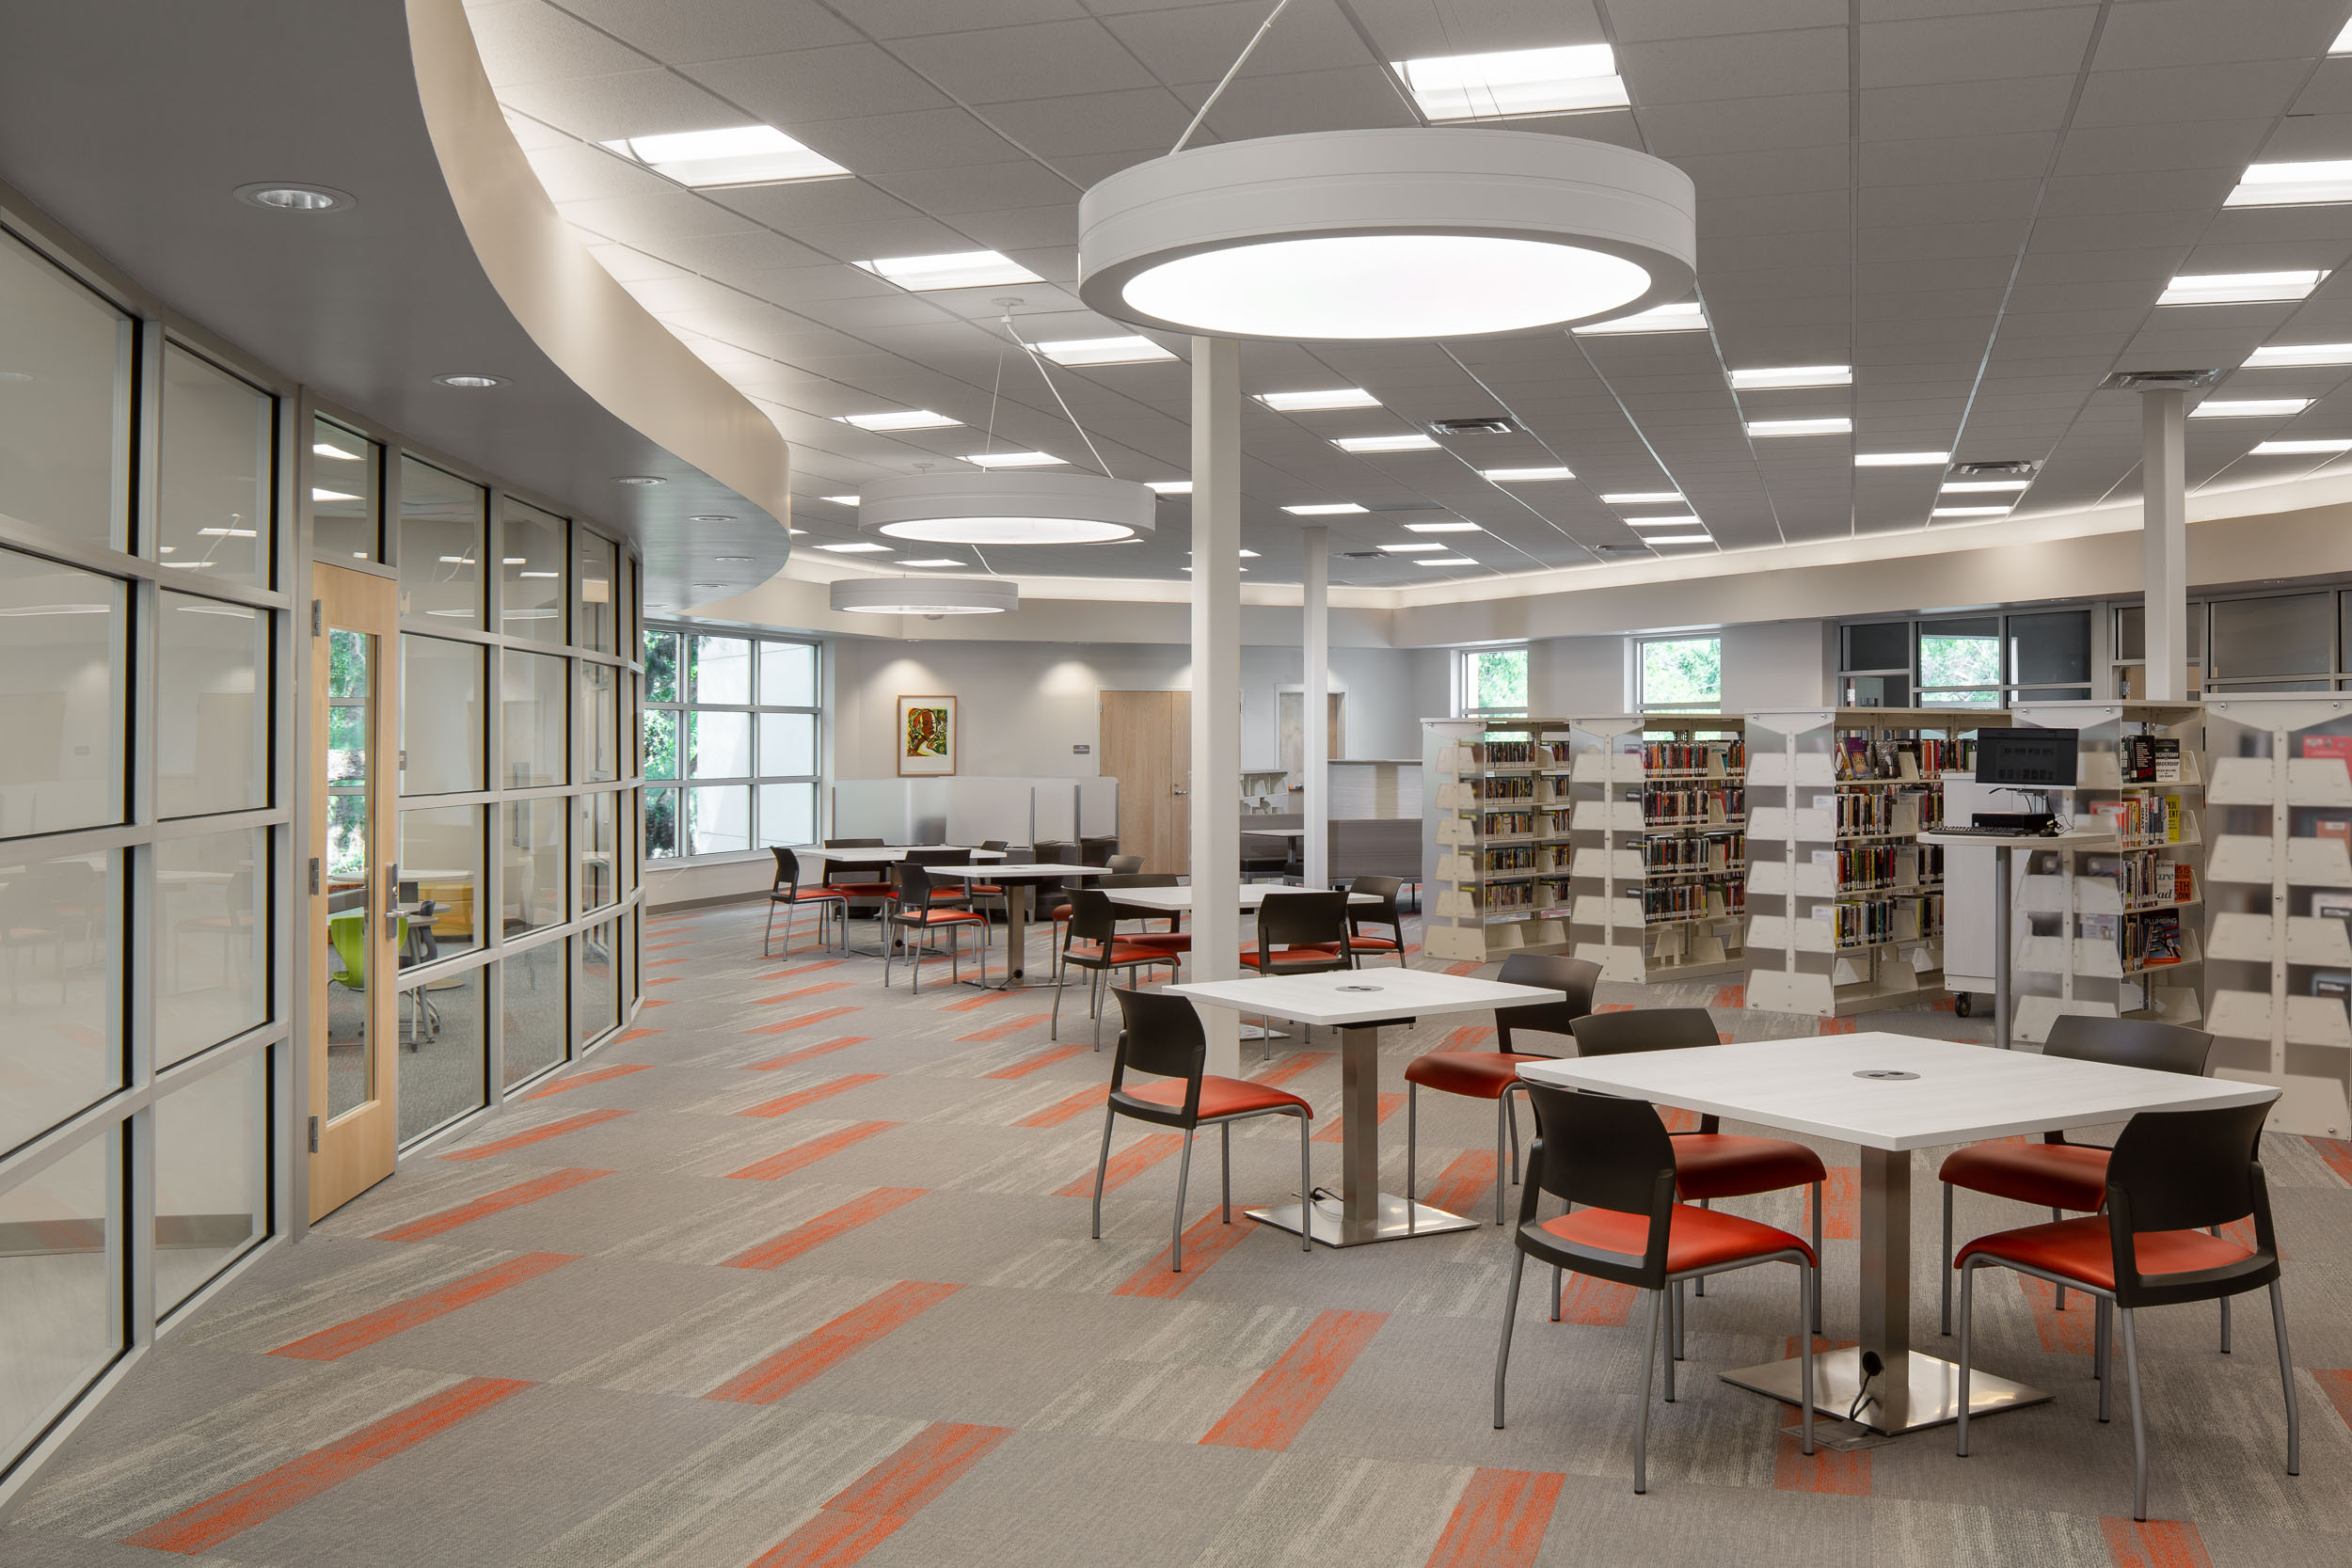 C. Blythe Andrews, Jr. Library - Javier Garcia Architectural Photographer